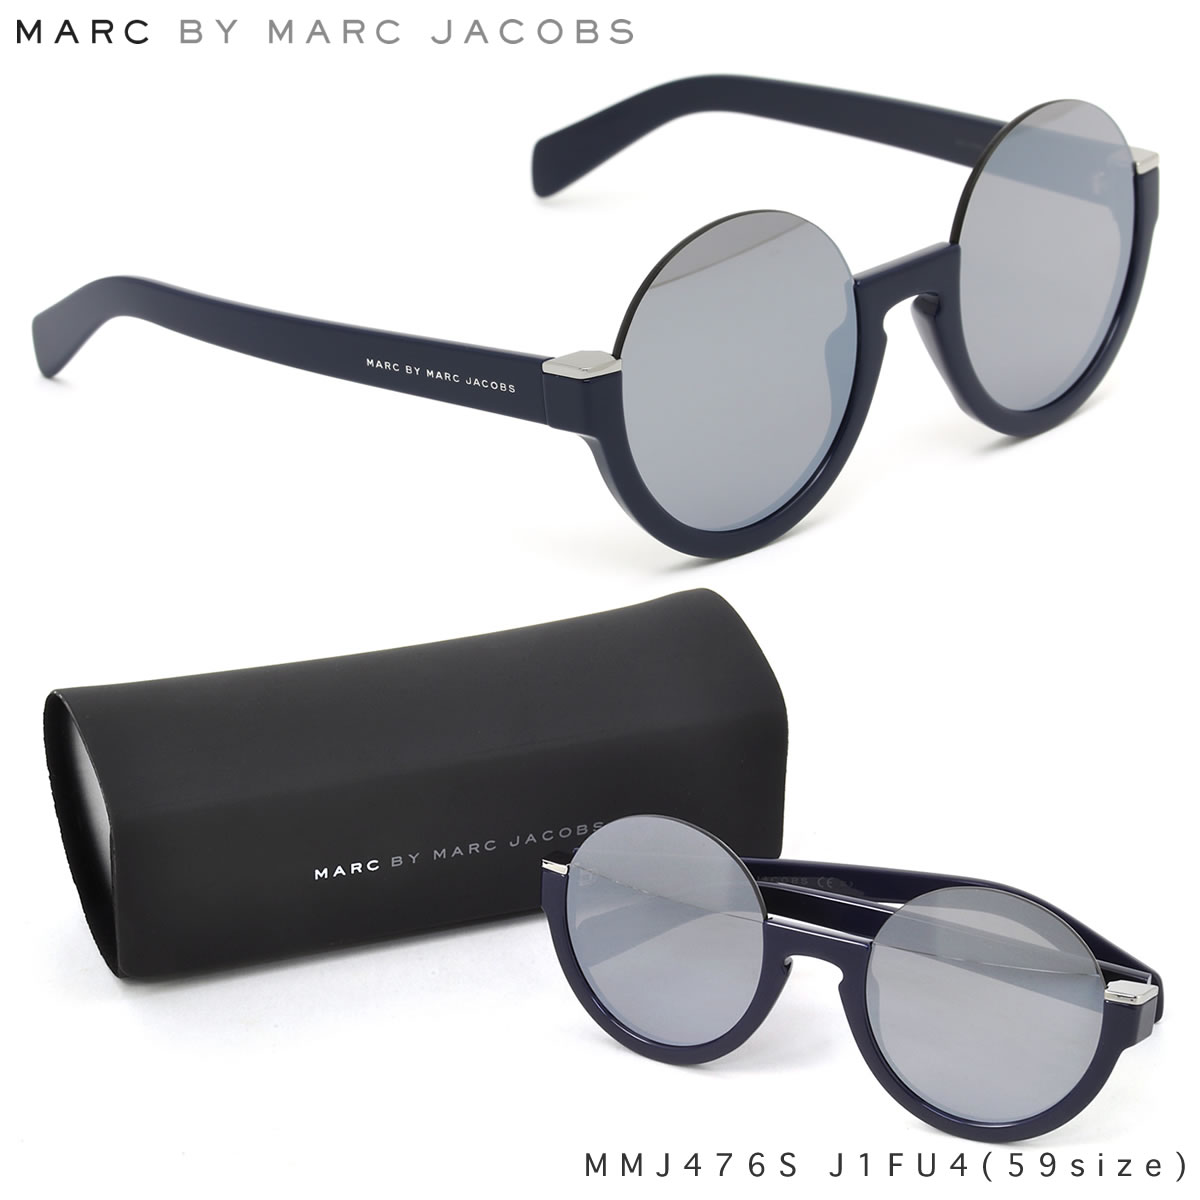 Marc By Marc Jacobs Round Frame Glasses : Optical Shop Thats Rakuten Global Market: Marc by Marc ...